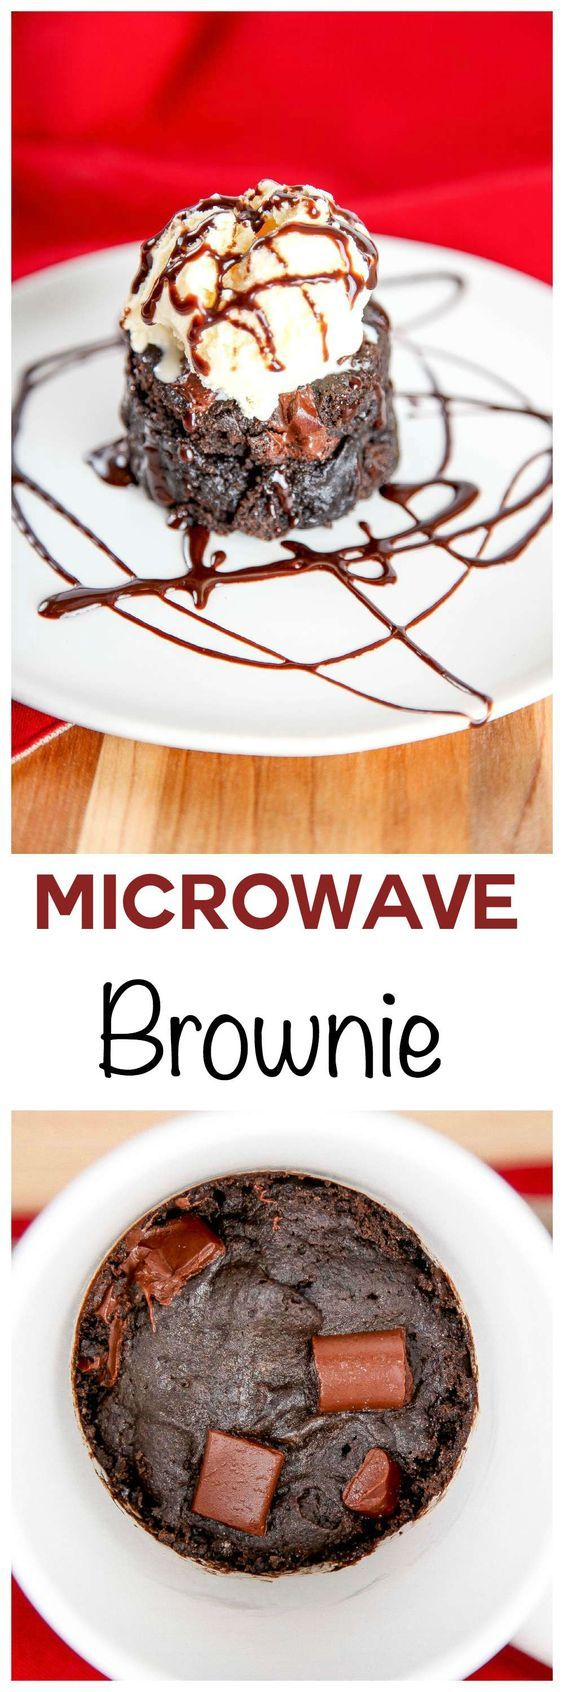 Microwave Mug Brownie: Moist and fudgy chocolate brownie loaded with rich chocolate chunks. Made in your microwave and ready in less than 5 minutes. This microwave mug brownies is perfect for that gotta have it NOW chocolate craving!